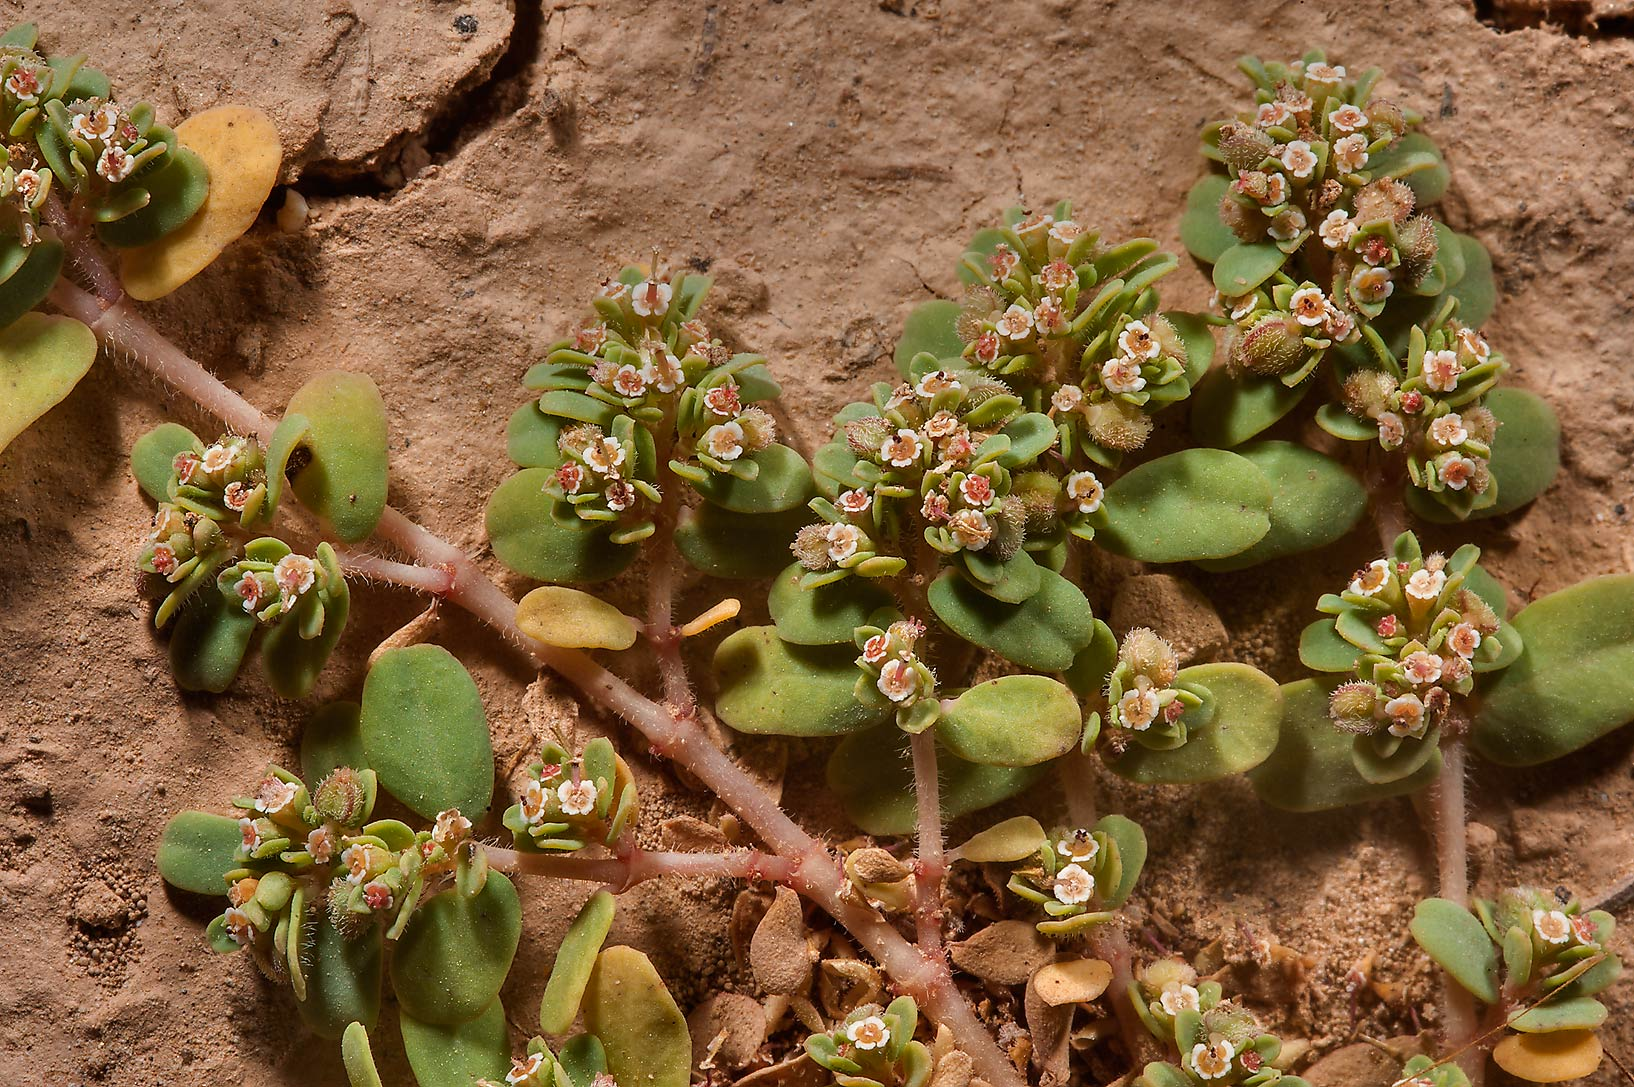 Euphorbia granulata (Euphorbia forsskaolii...of Al Magdah farms in northern Qatar